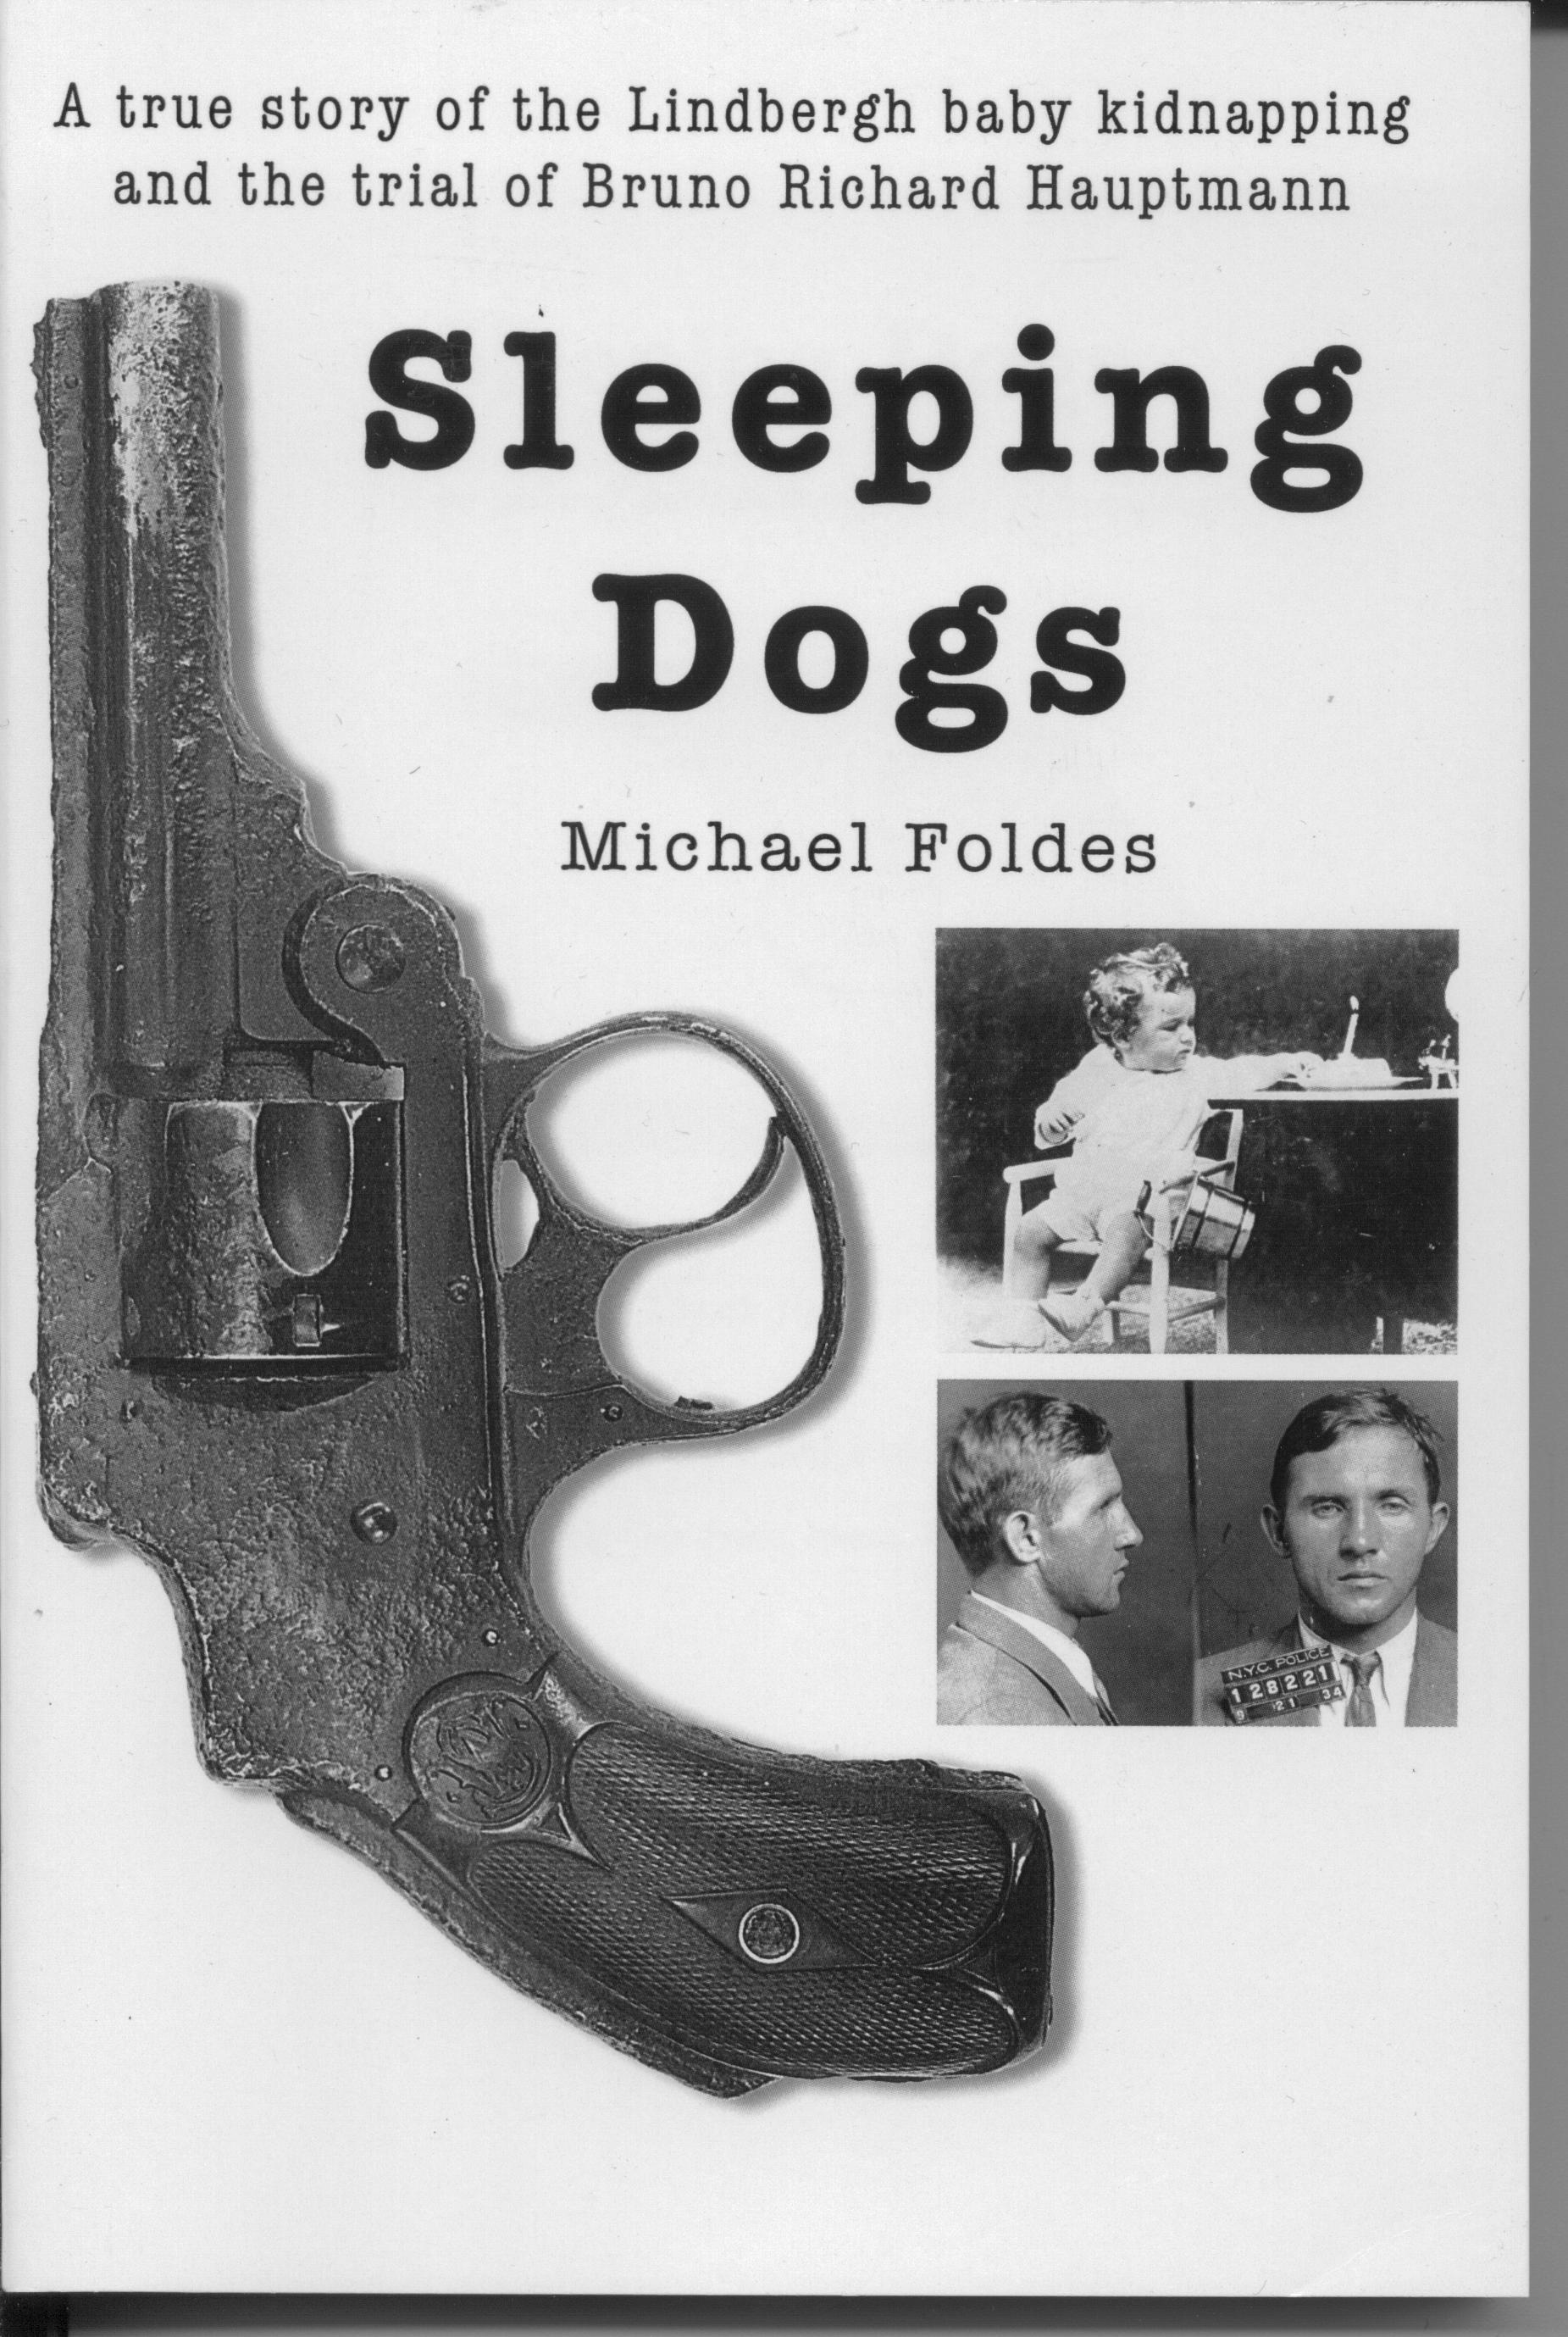 Sleeping Dogs: A true story of the Lindbergh baby kidnapping